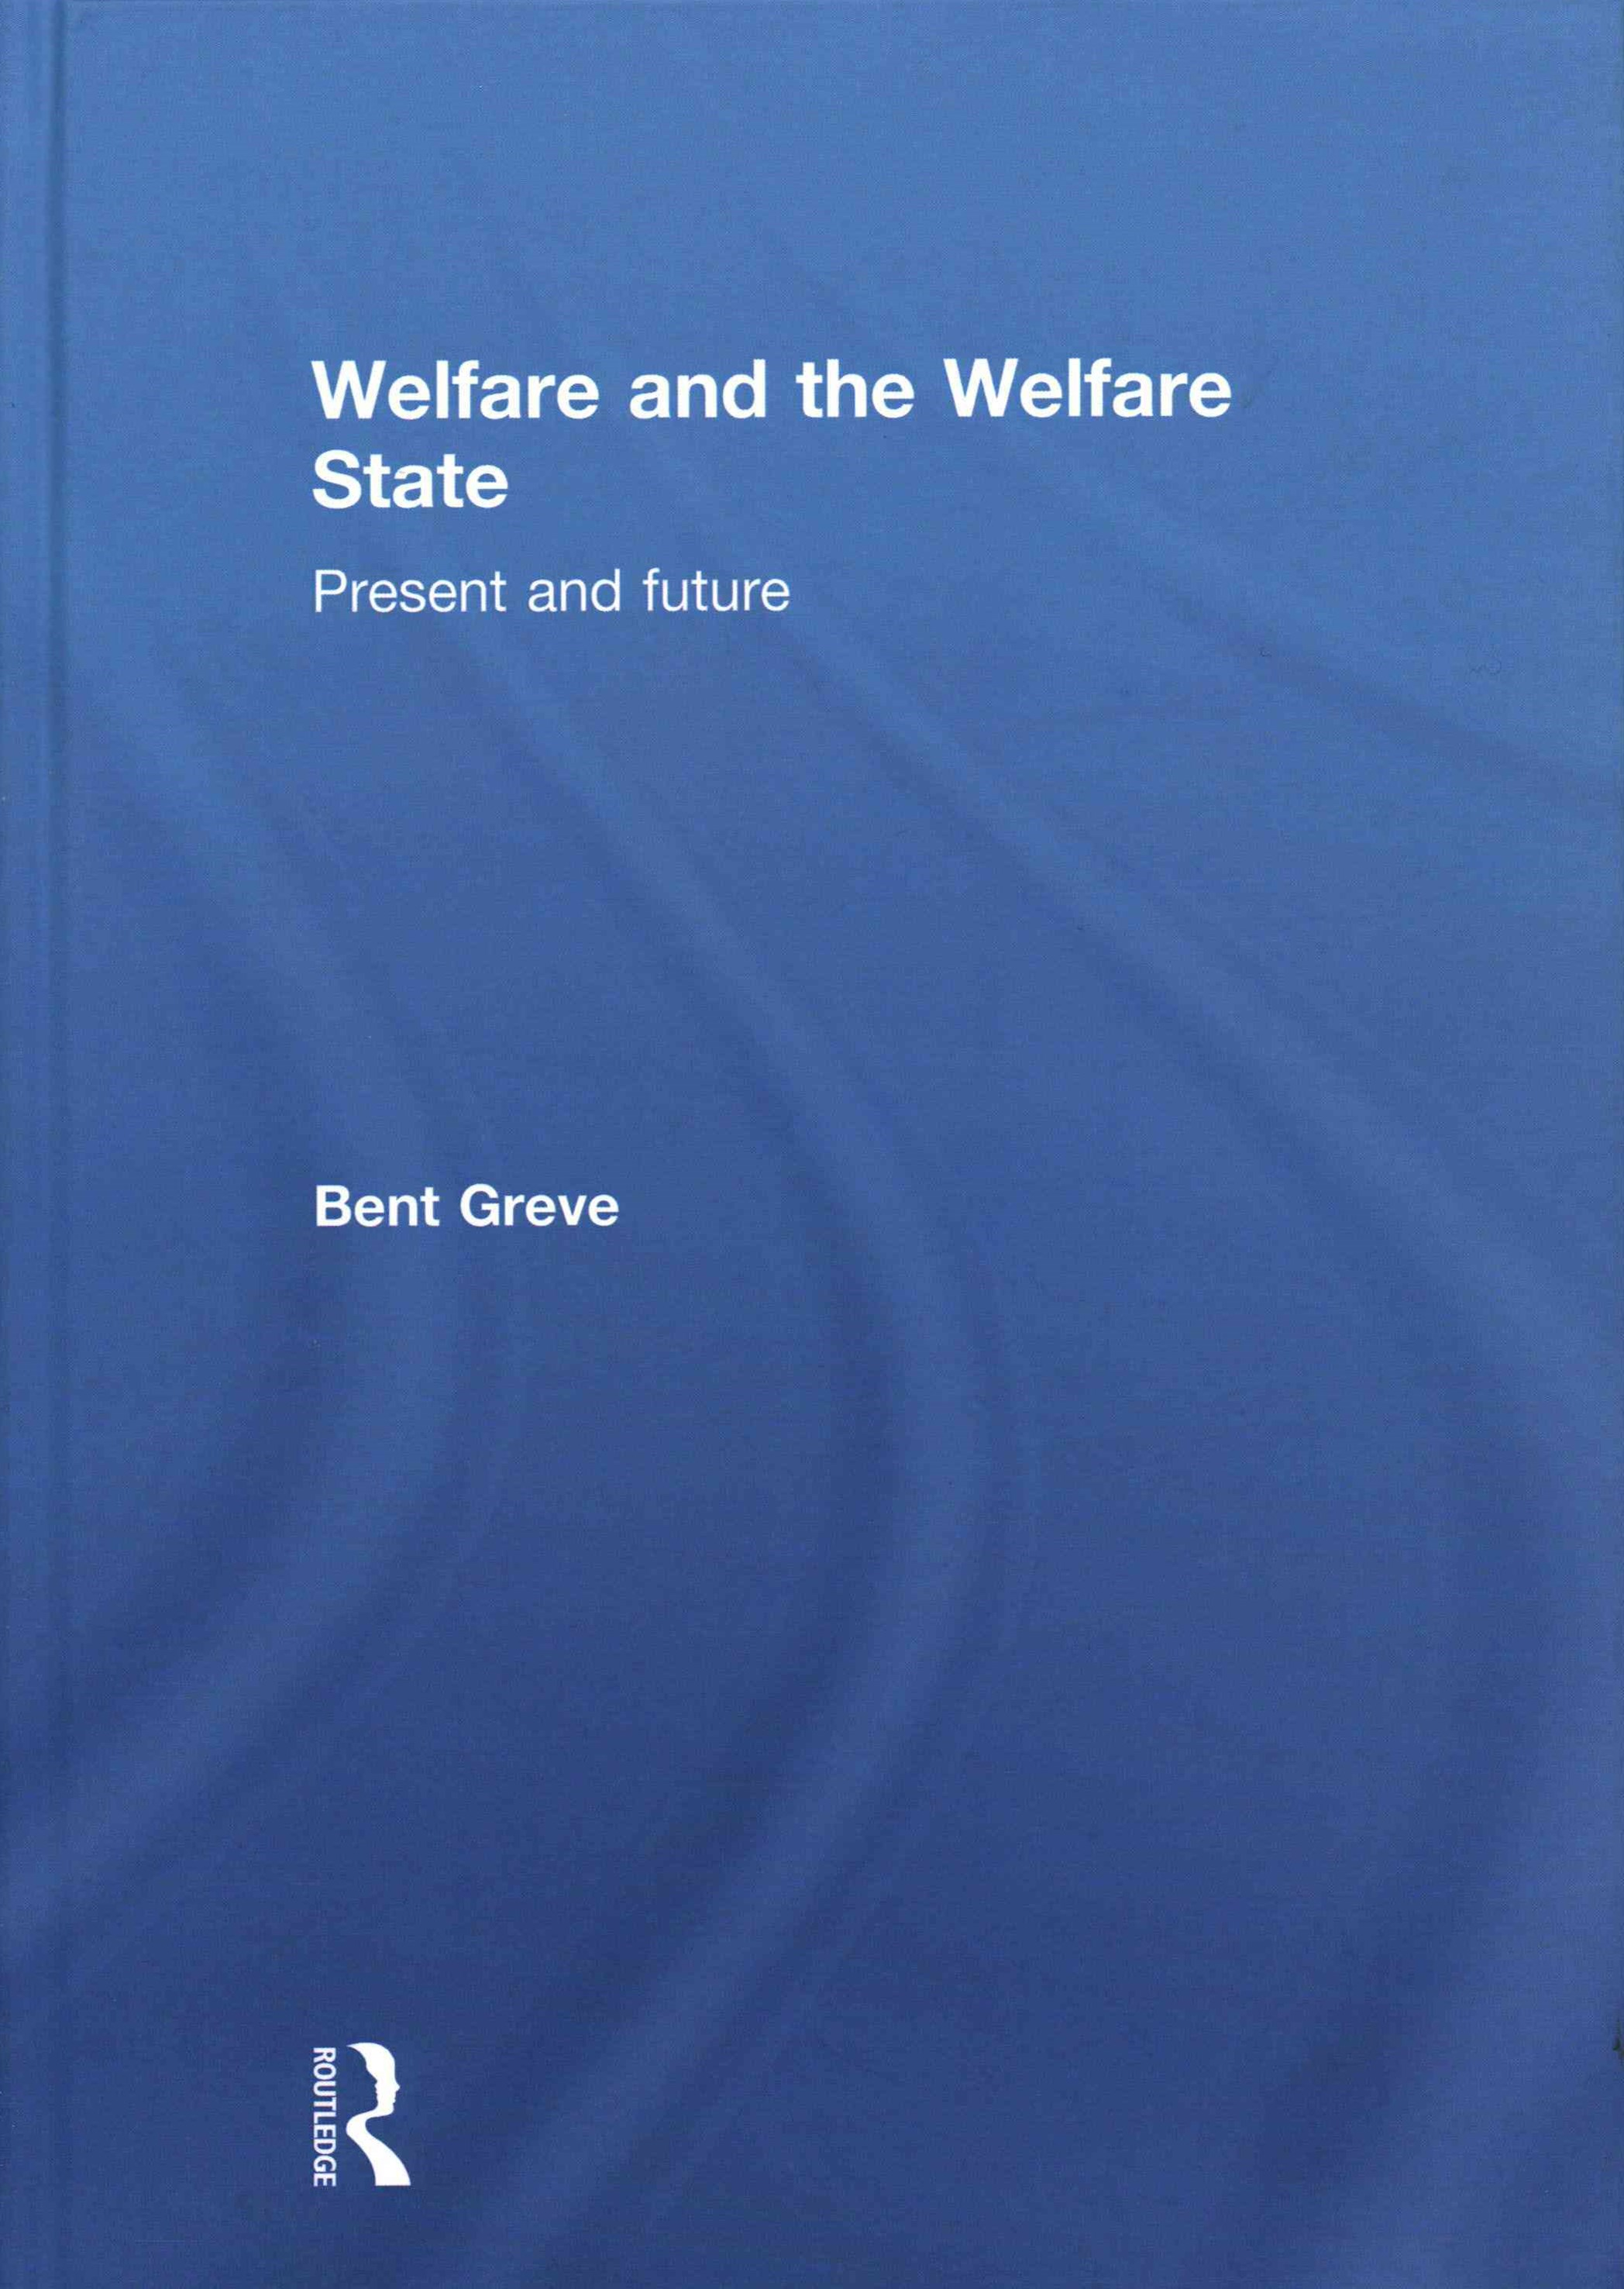 Welfare and the Welfare State